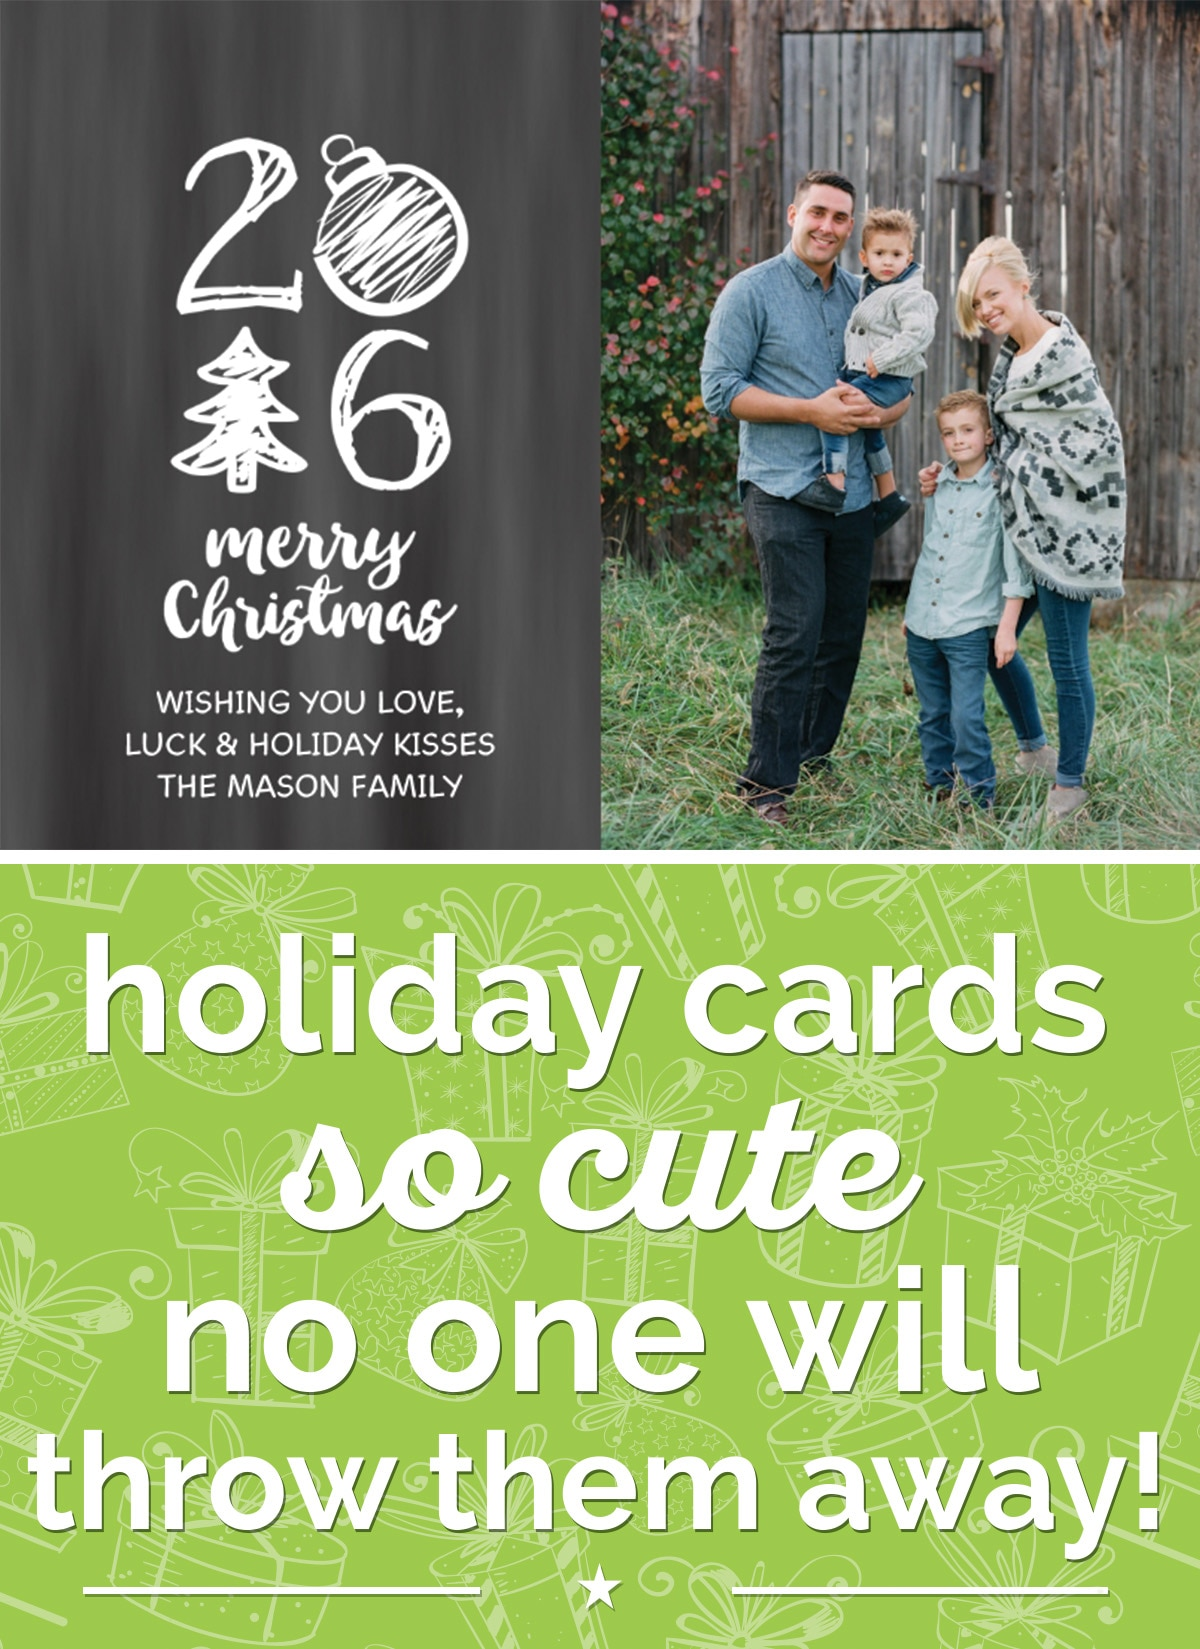 Holiday Cards So Cute No One Will Throw Them Away | thegoodstuff